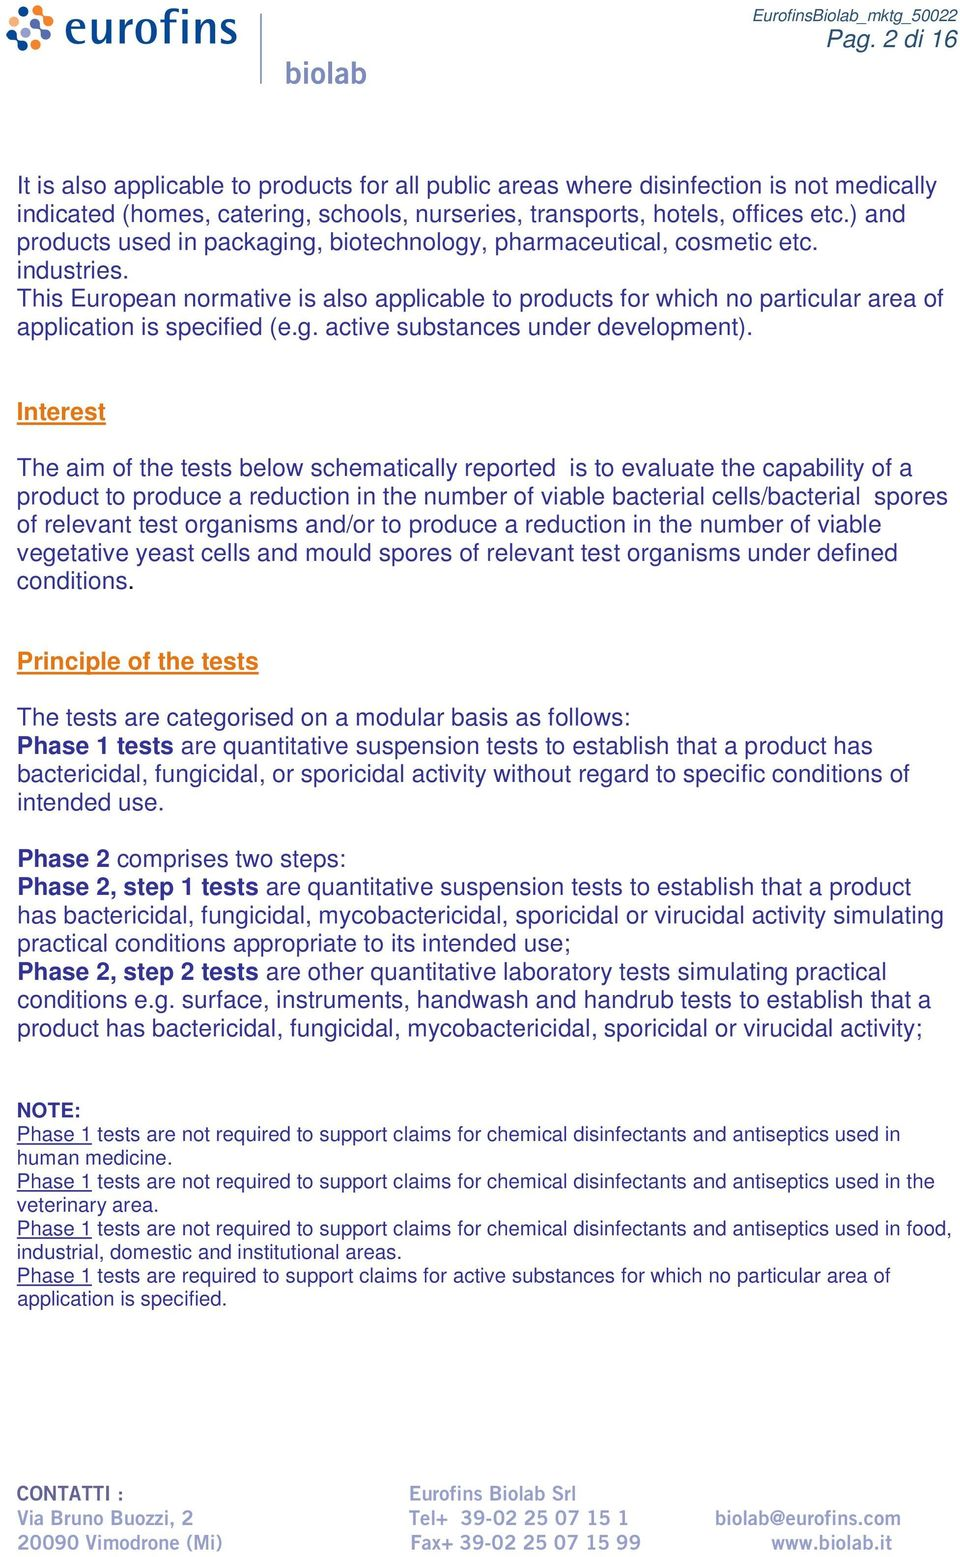 QUANTITATIVE TESTS FOR THE EVALUATION OF DISINFECTANT ACTIVITY - PDF